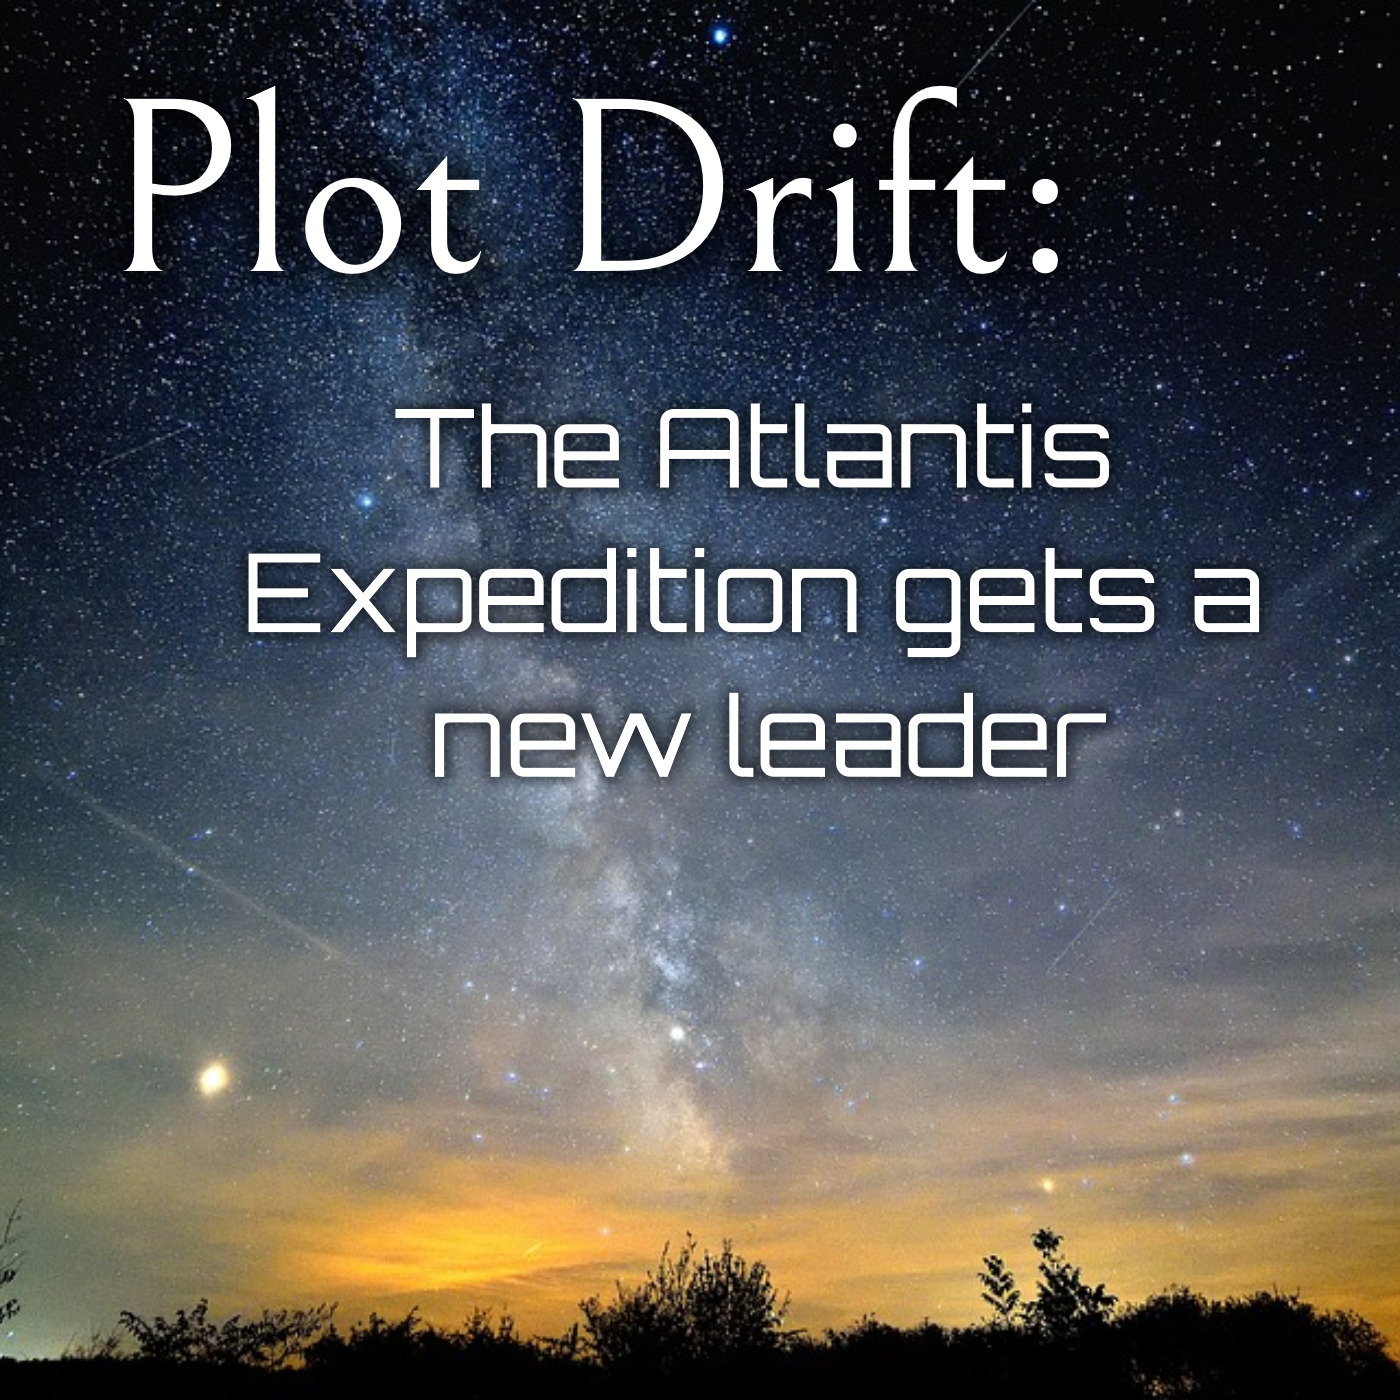 Plot Drift - The Atlantis Expedition Gets a New Leader (SGA)